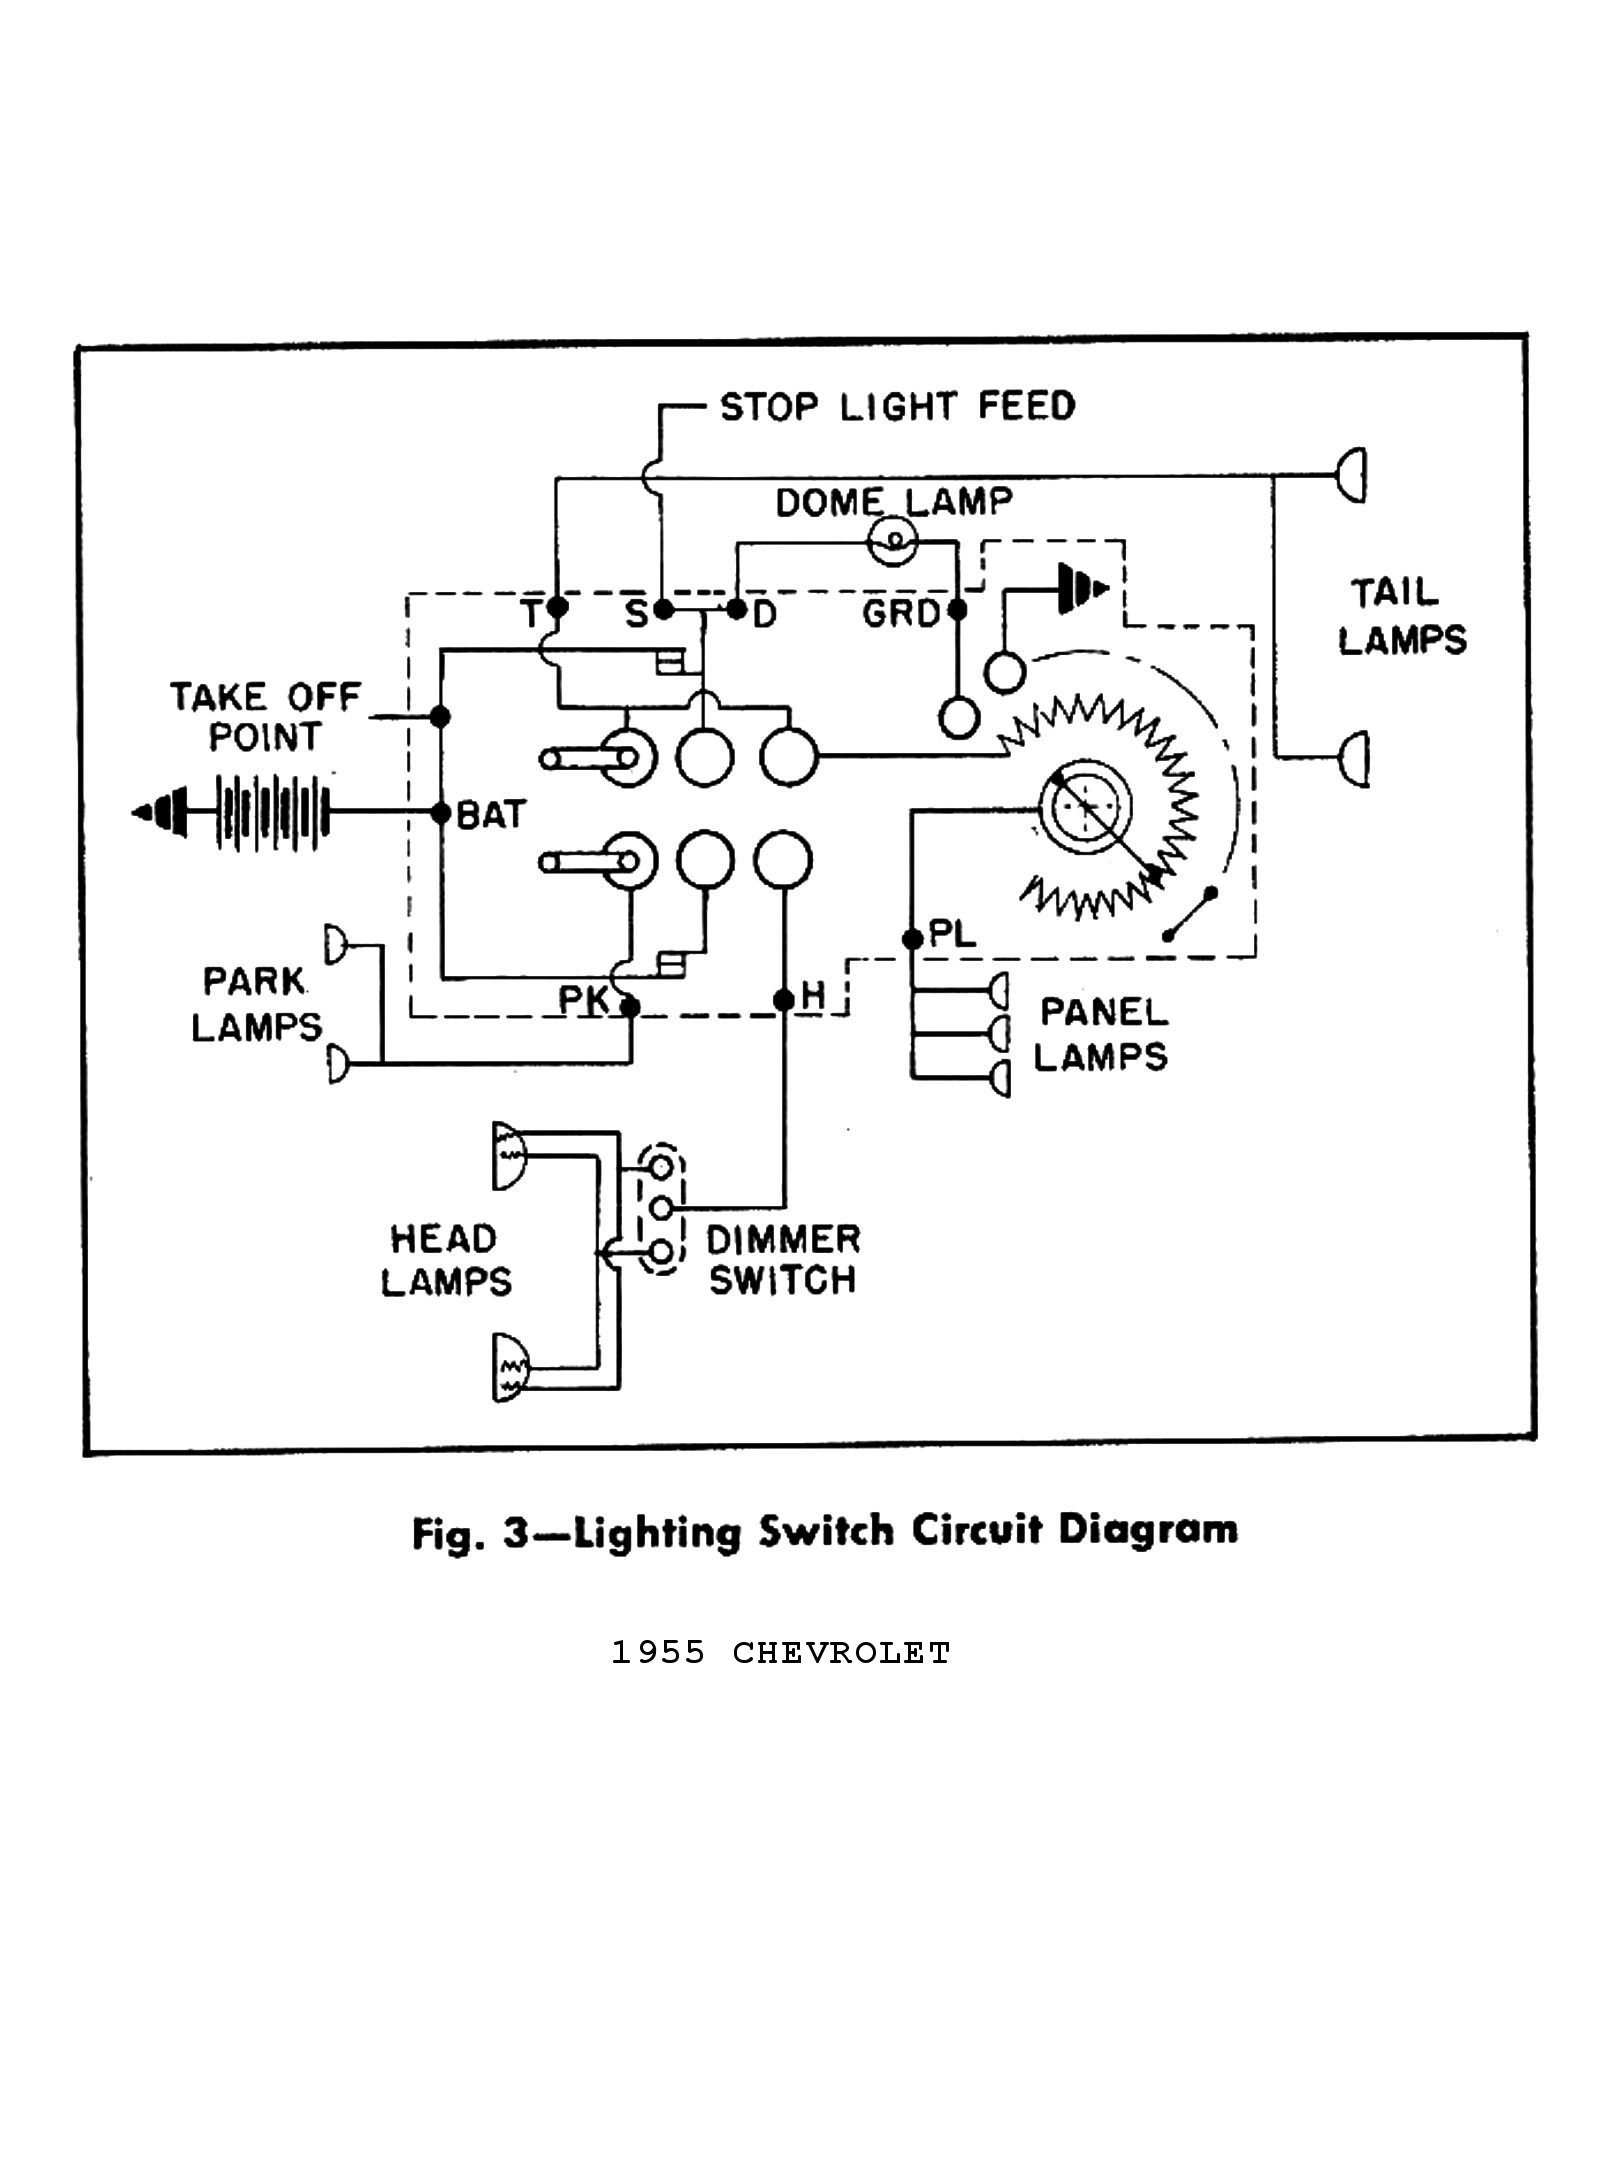 heater wiring diagram 1971 chevy index listing of wiring diagrams